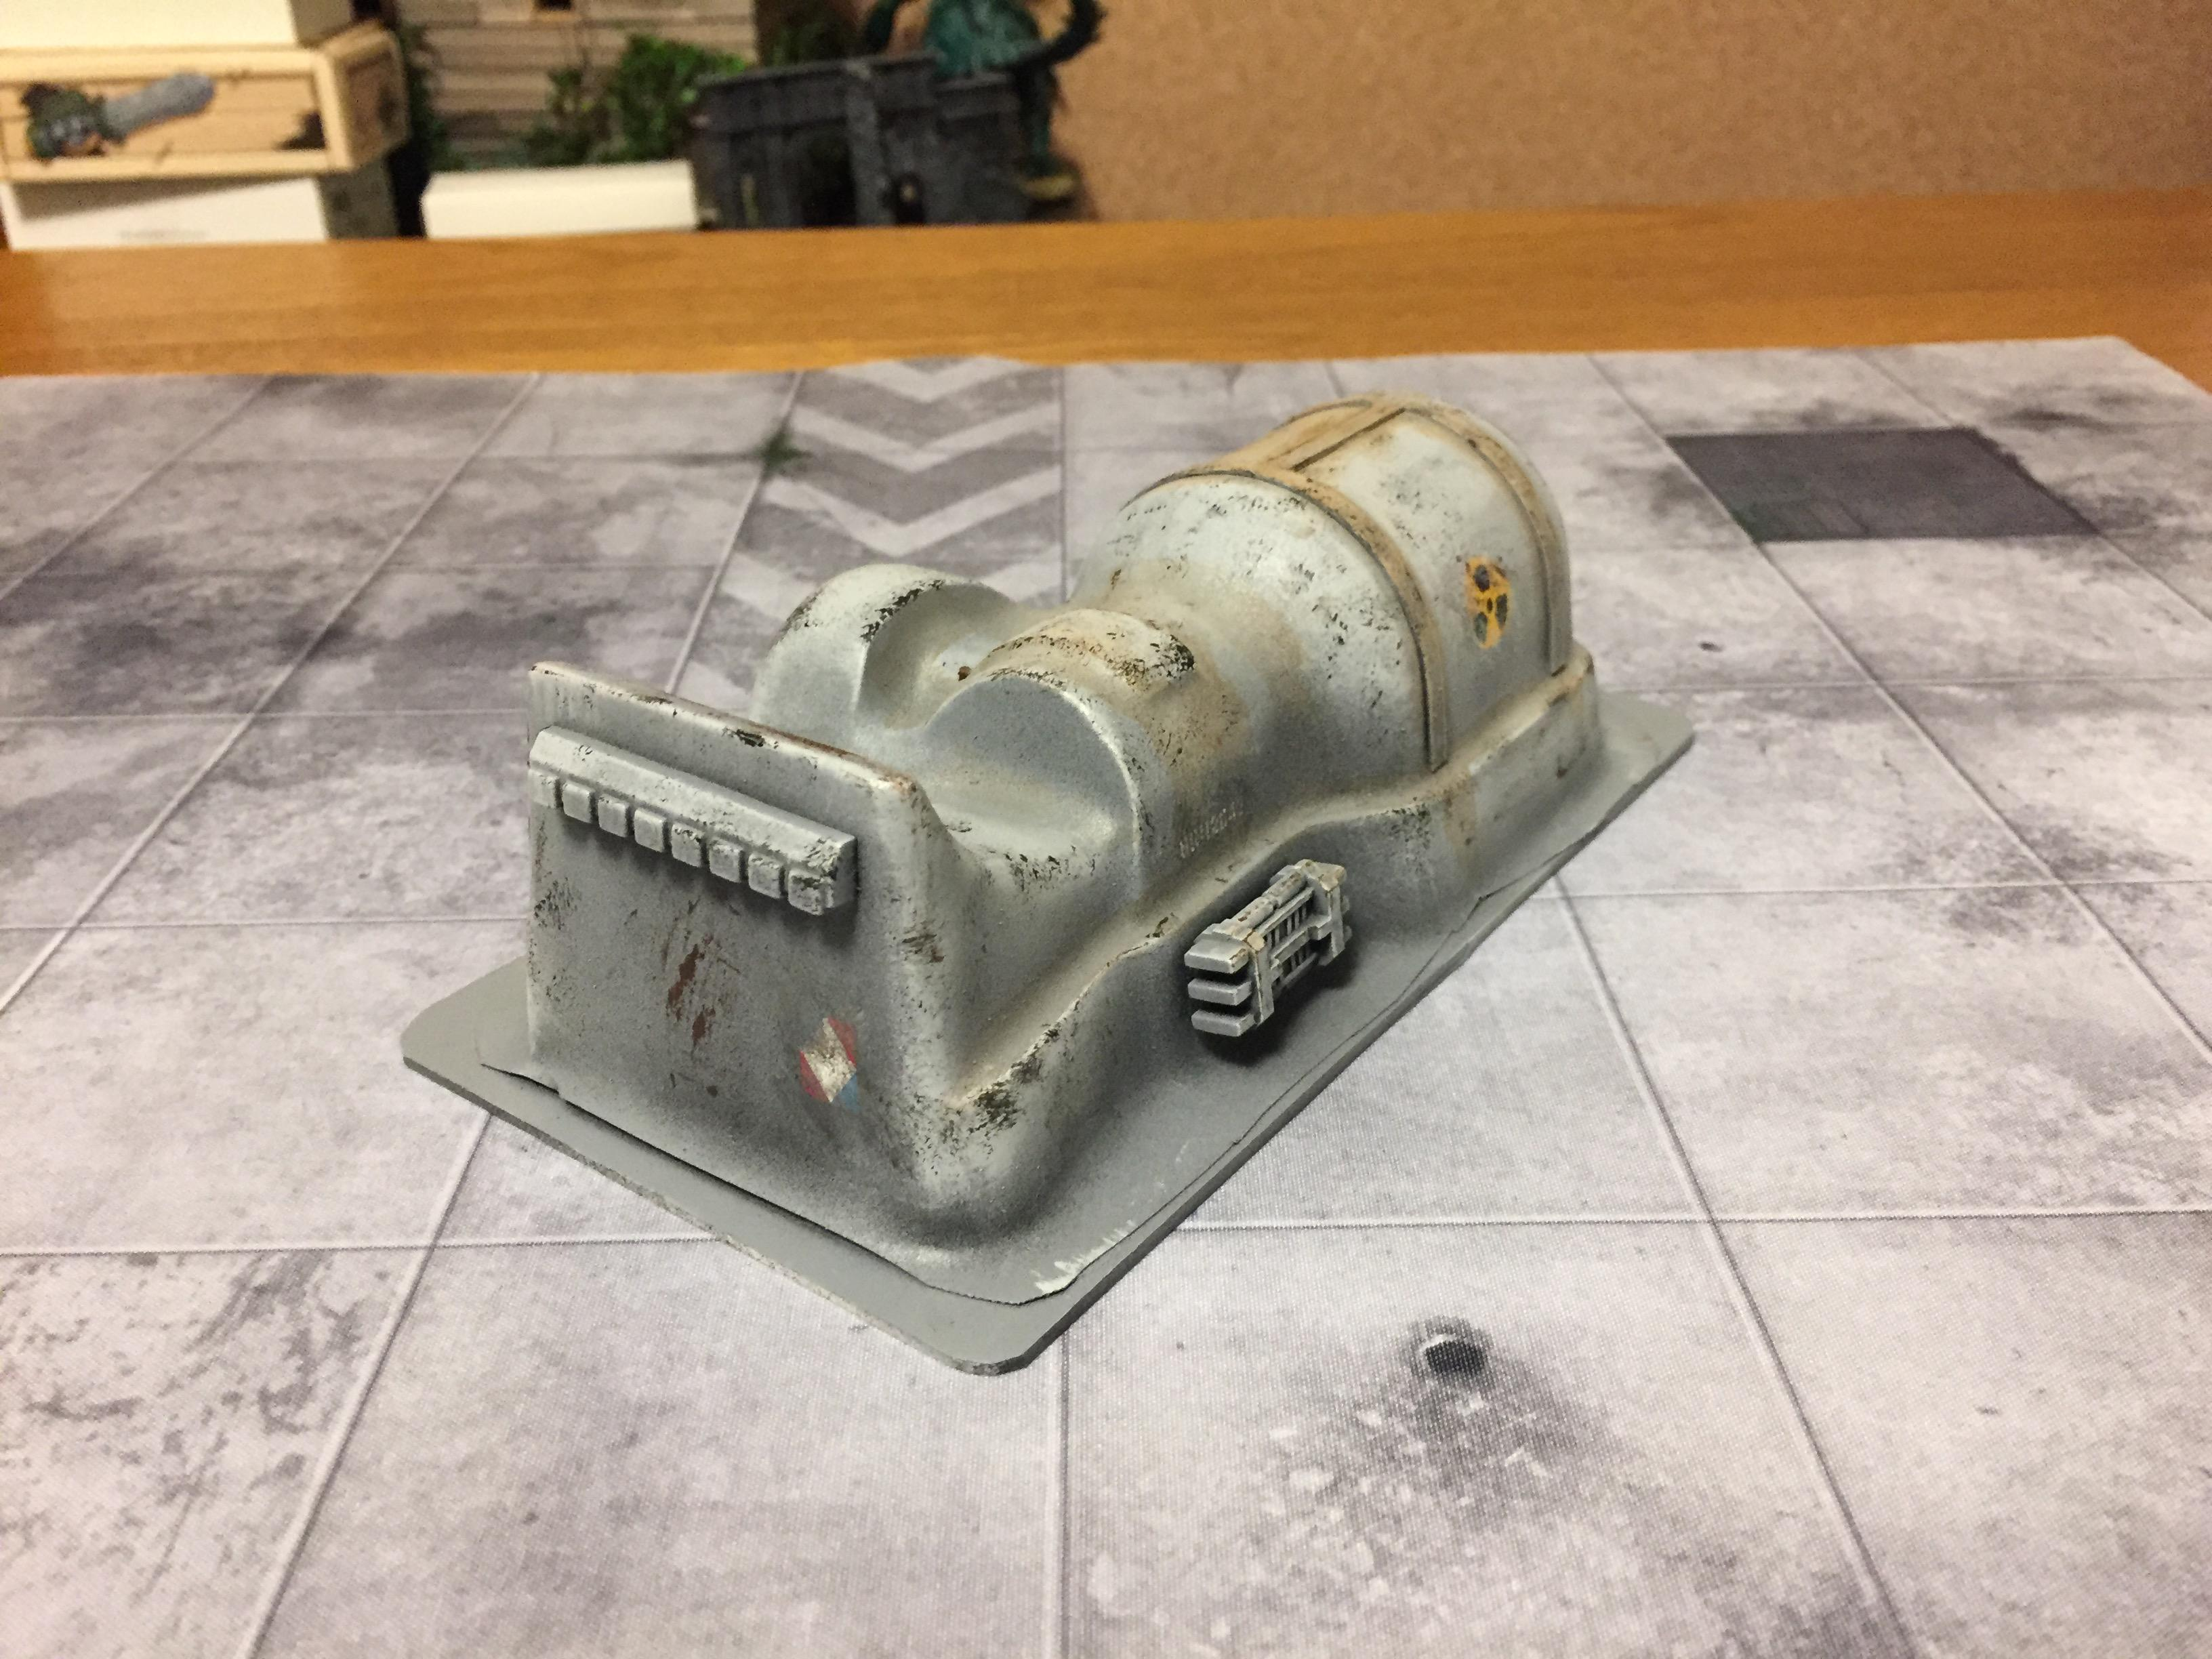 August 2021, Maelstrom's Edge, Packaging, Recycled, Science-fiction, Terrain, Trash